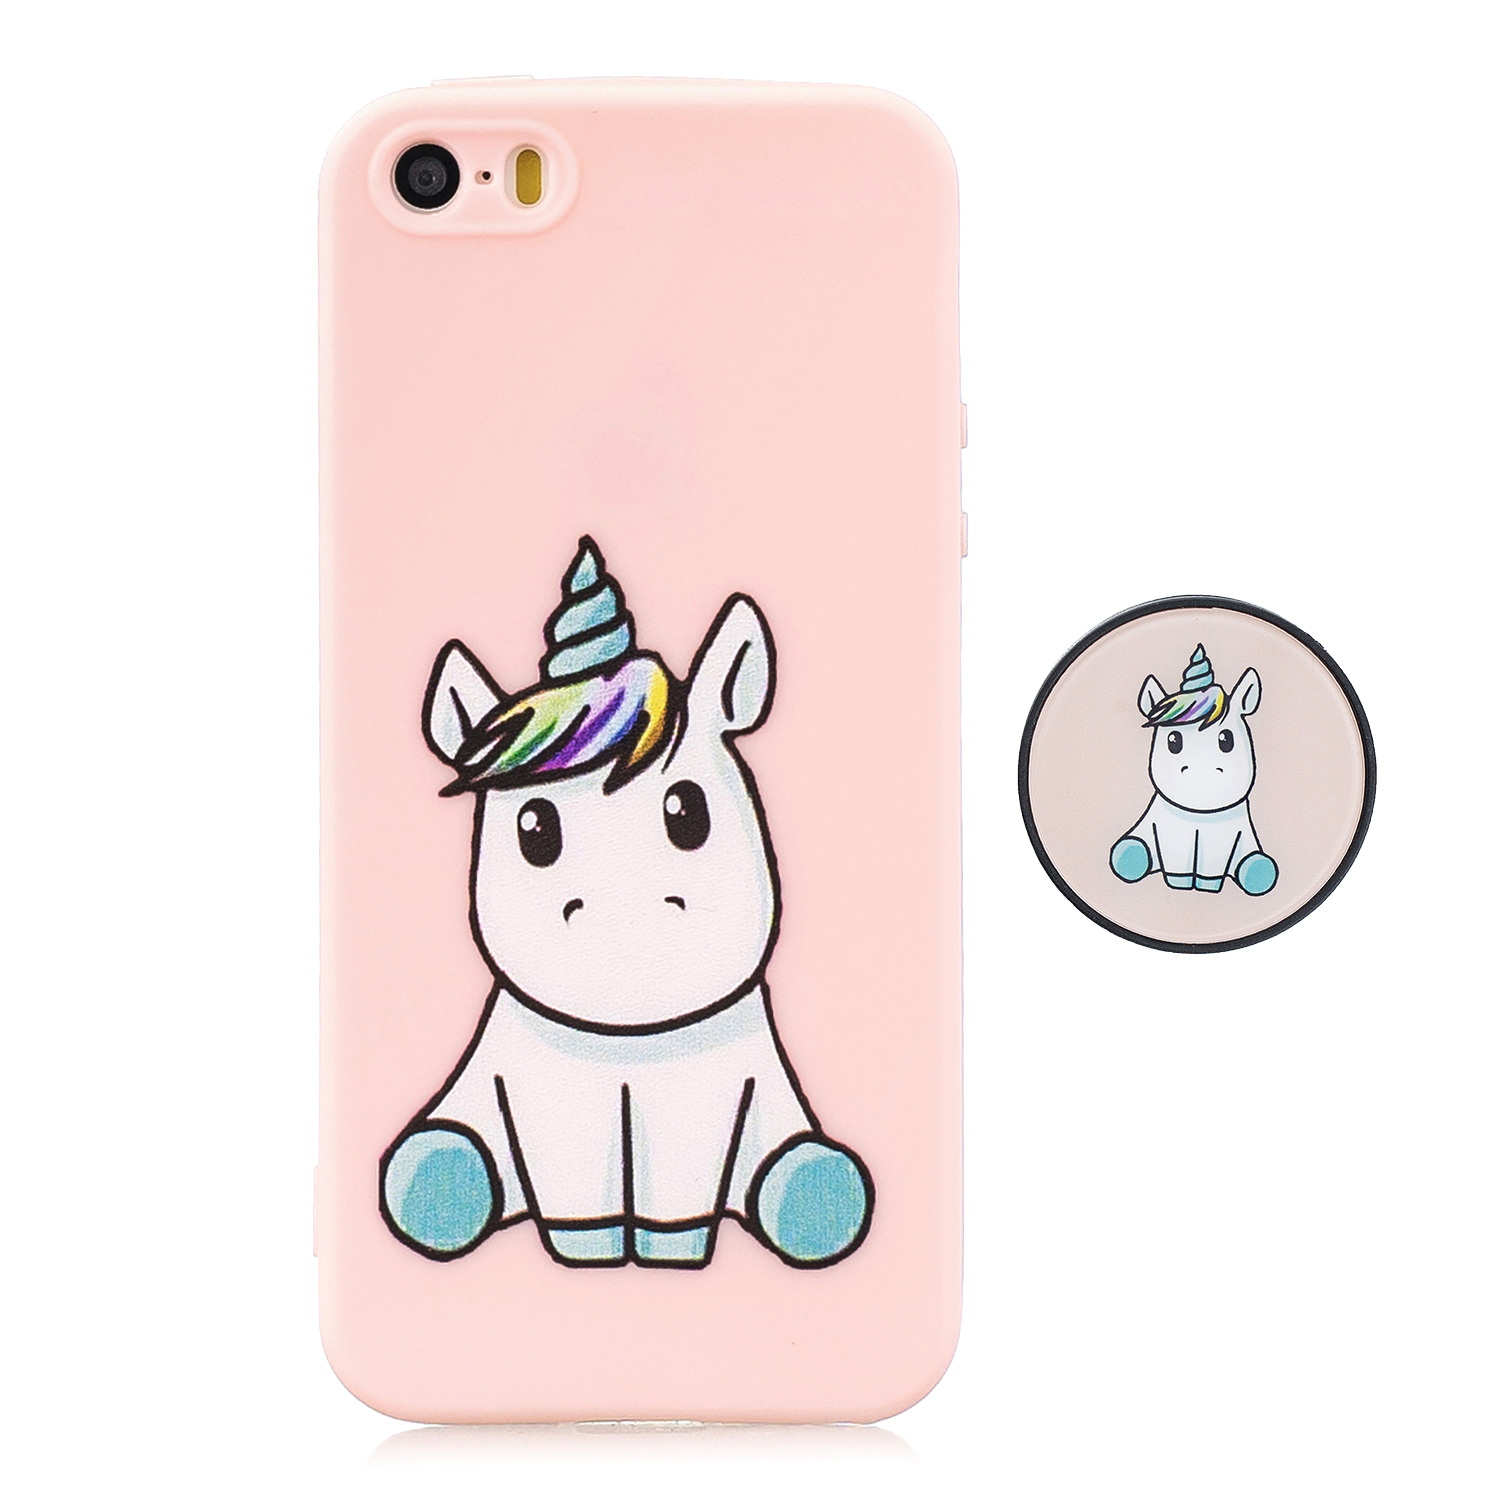 For iPhone 5 5S SE Phone Cases TPU Full Cover Cute Cartoon Painted Case Girls Mobile Phone Cover 6